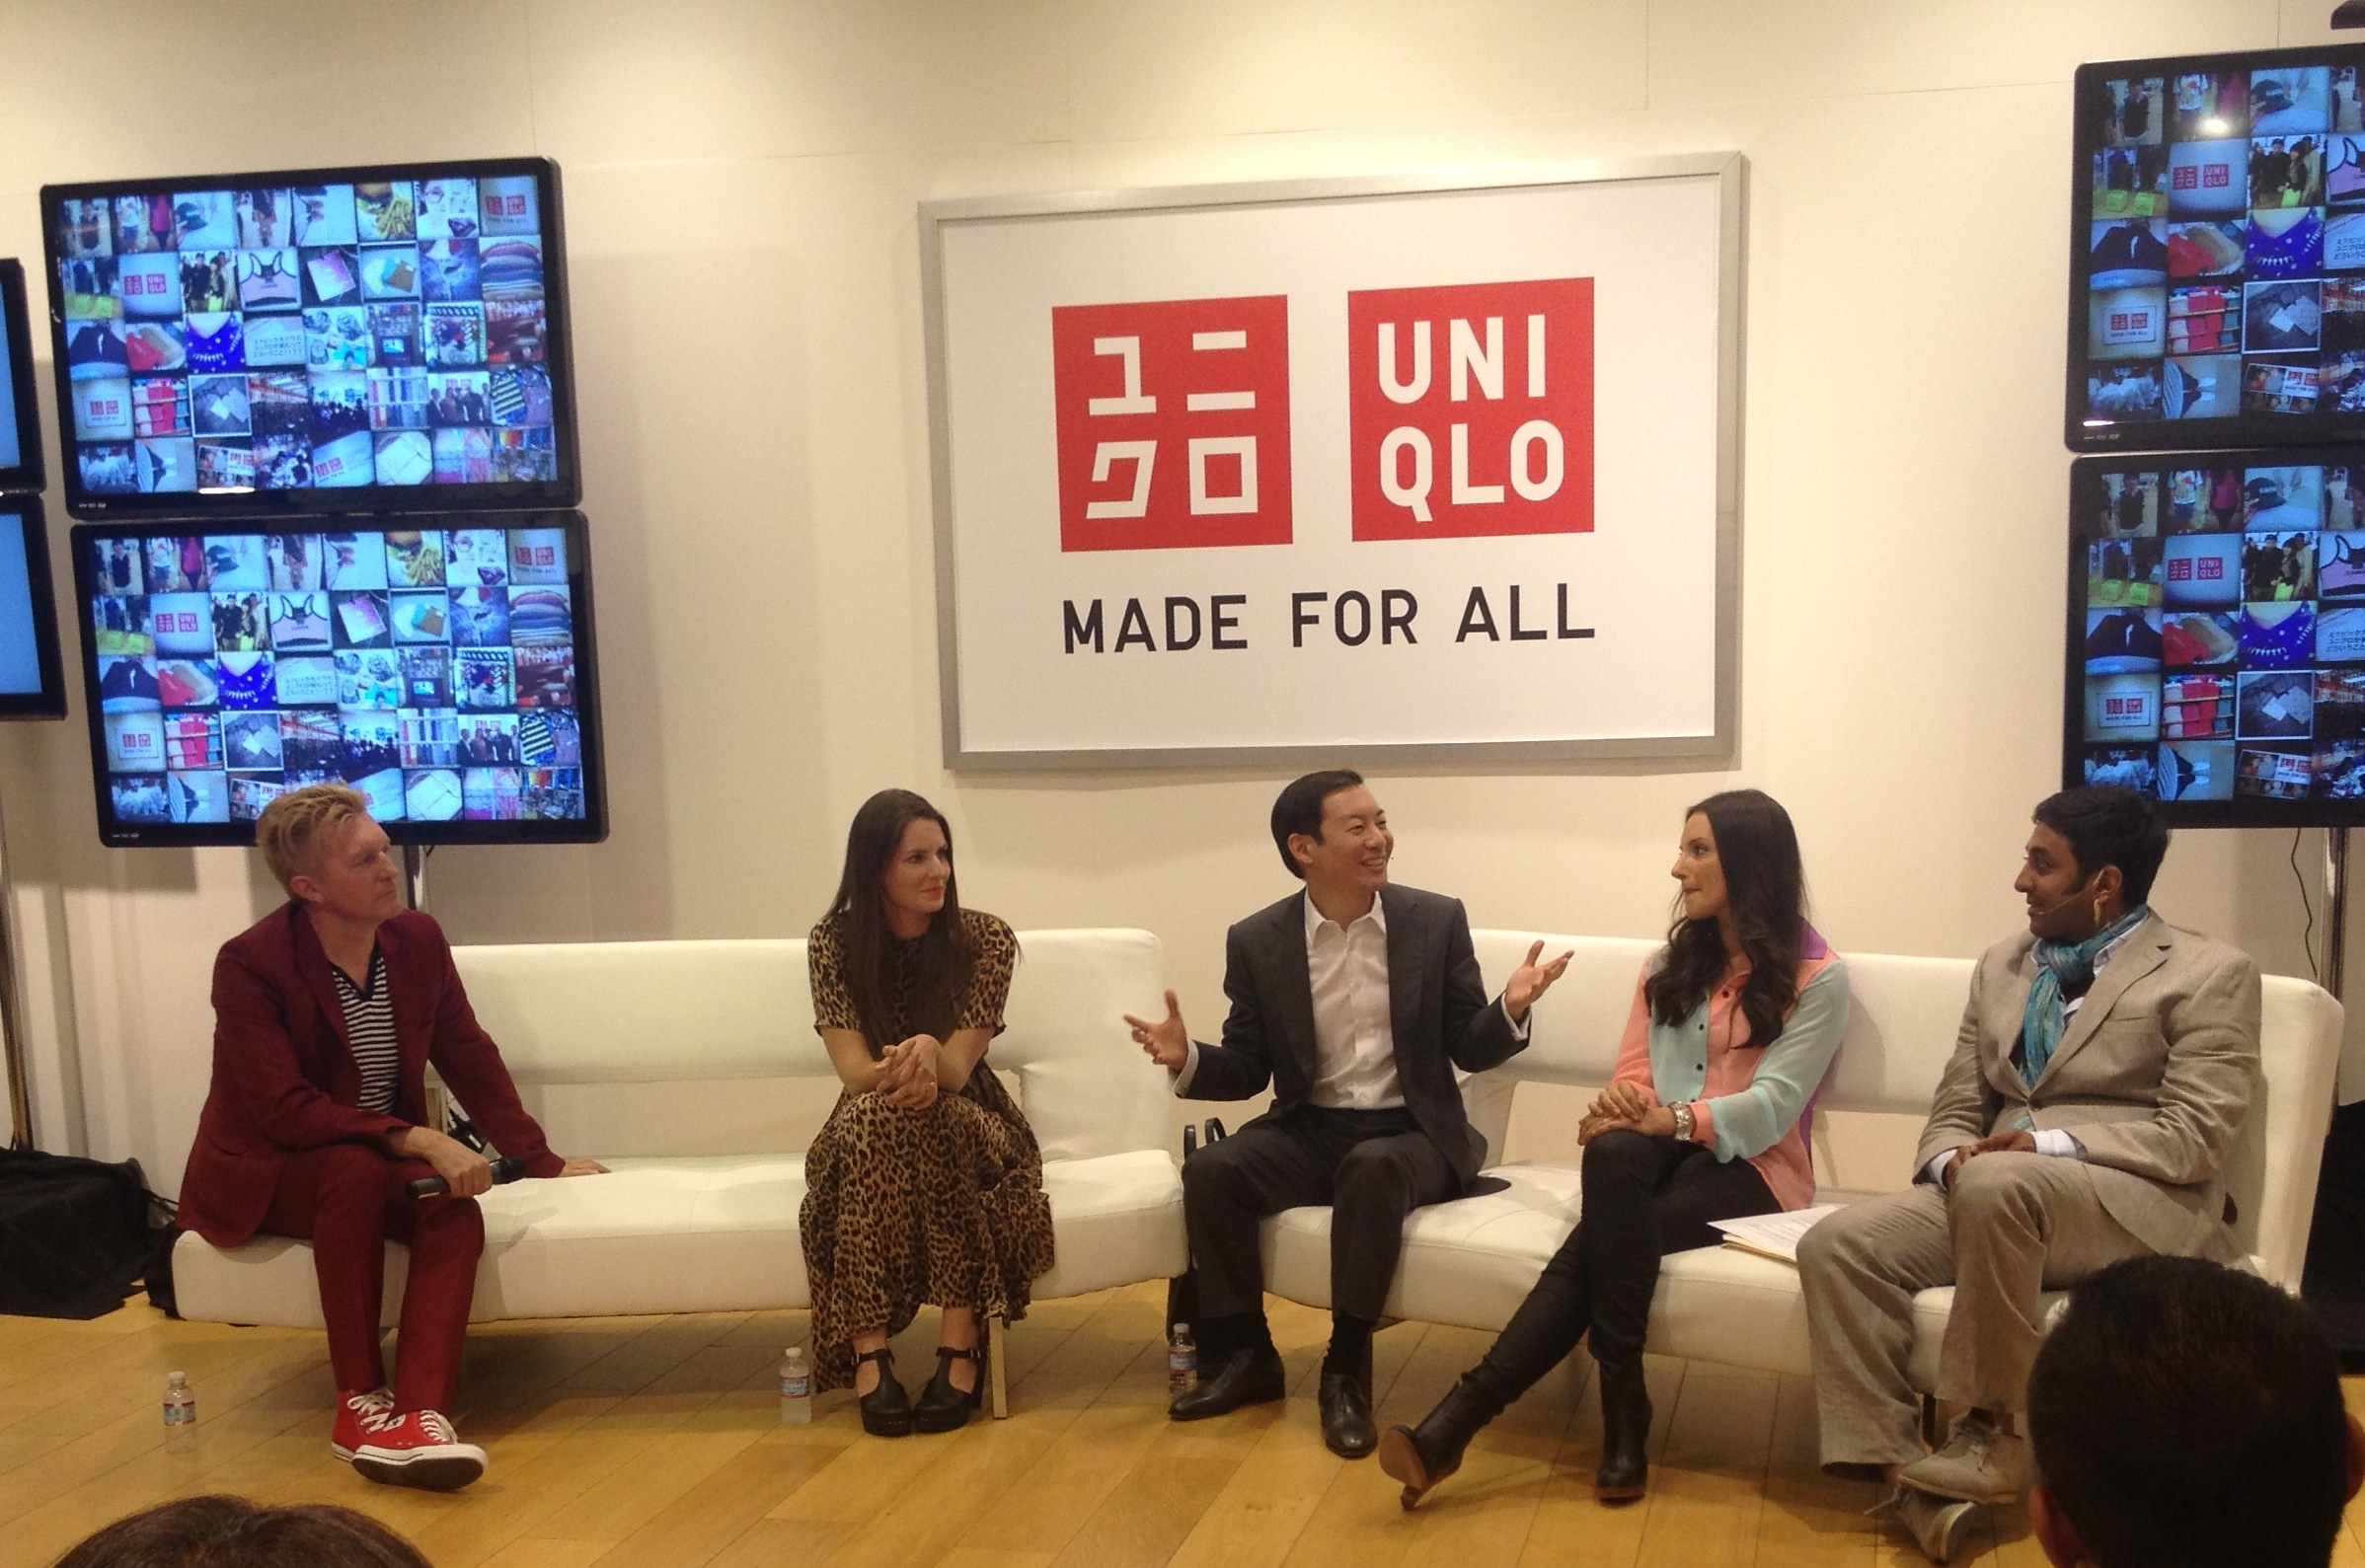 Keanan Duffty Talks Fashion + Tech at UNIQLO